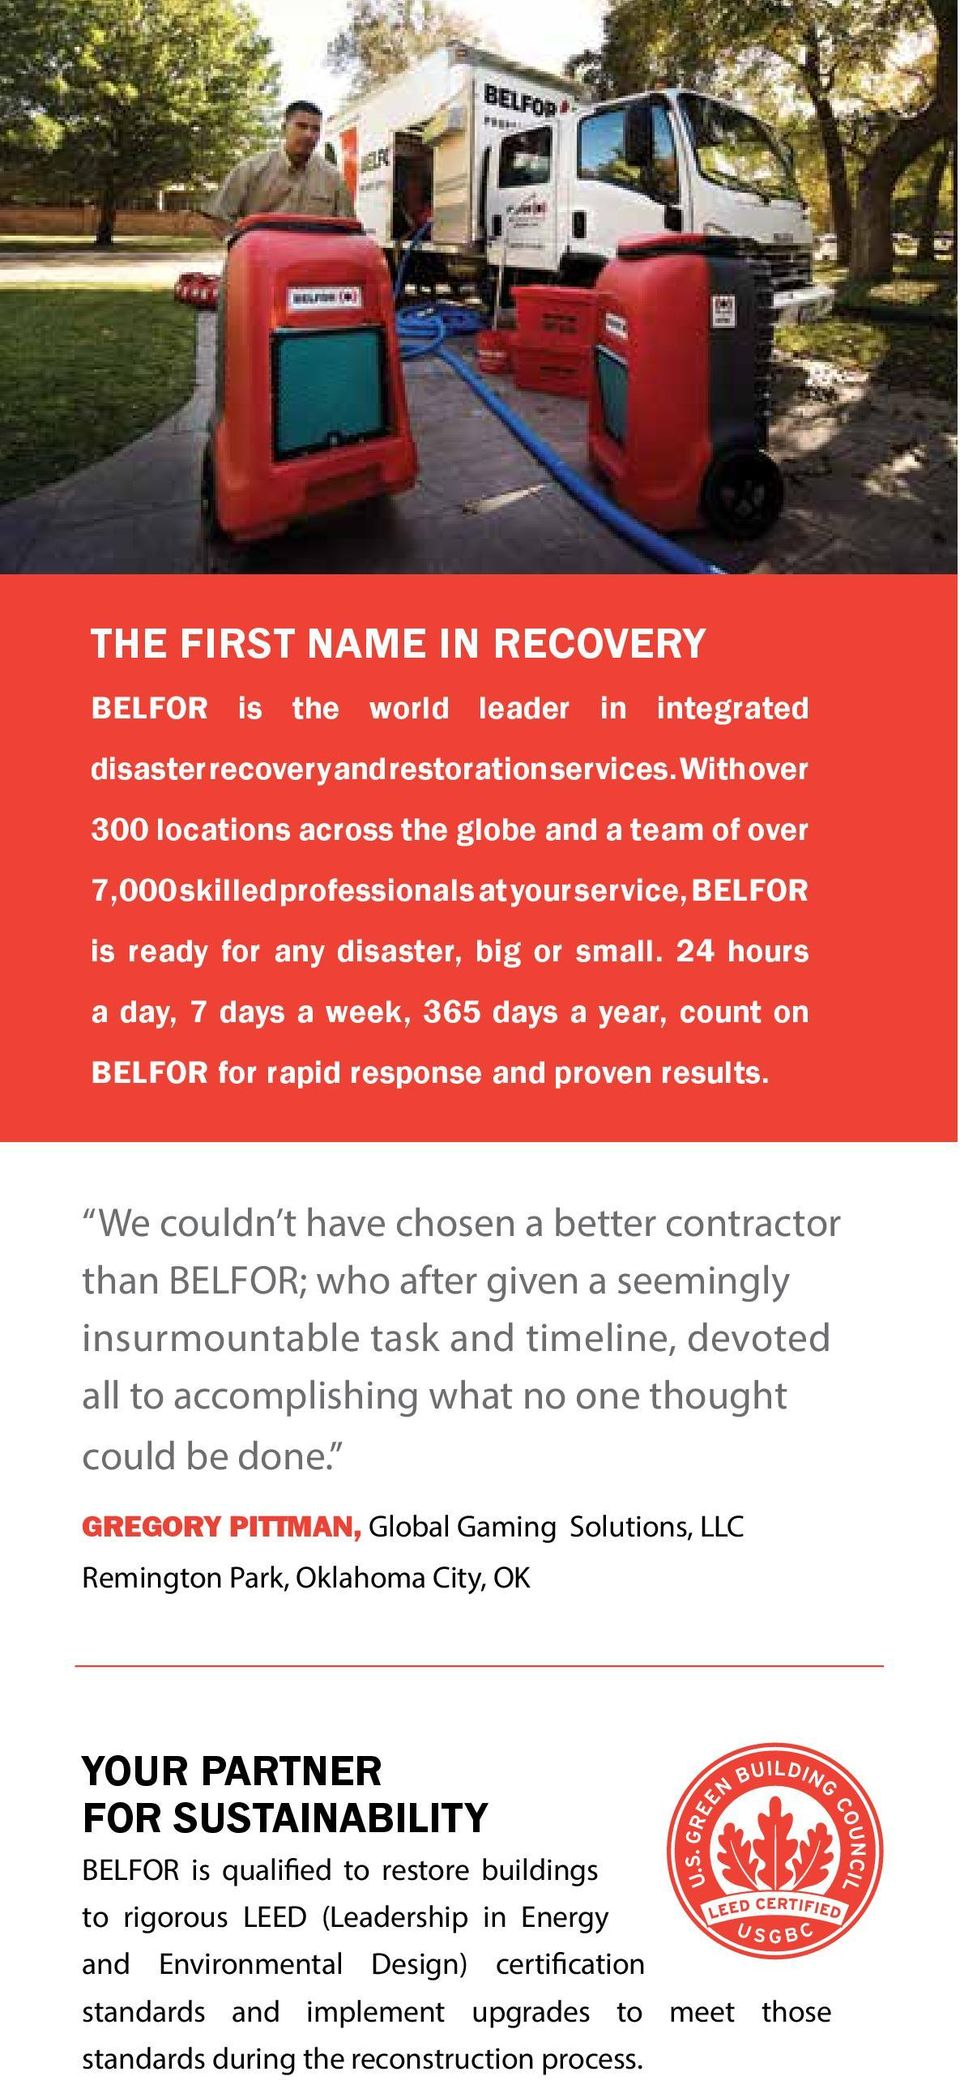 24 hours a day, 7 days a week, 365 days a year, count on BELFOR for rapid response and proven results.